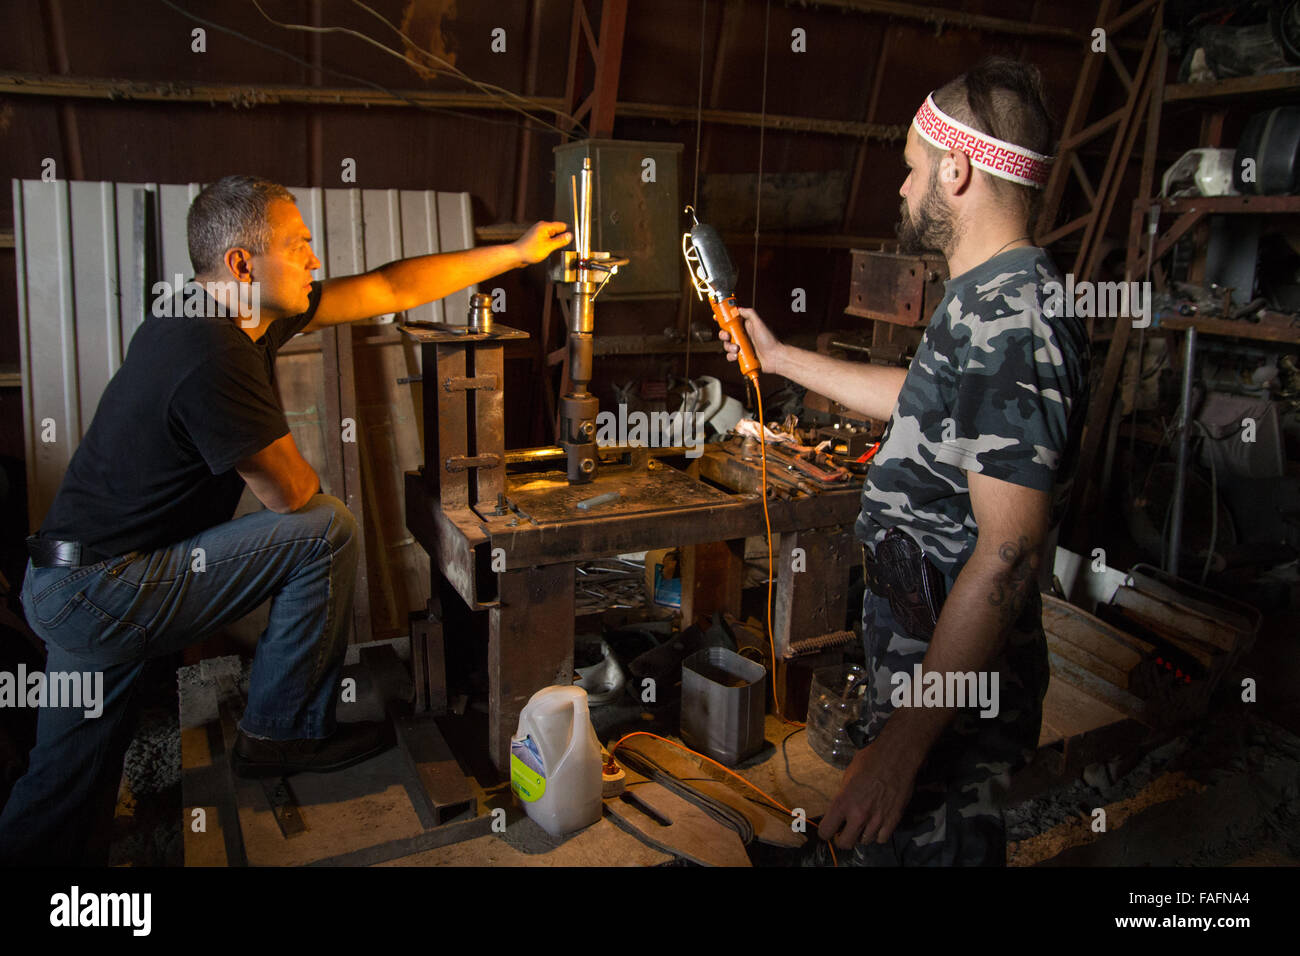 Vasily and Stanislav restoring assembly stand using German drawings at the Museum of Industrial Culture in Moscow. - Stock Image